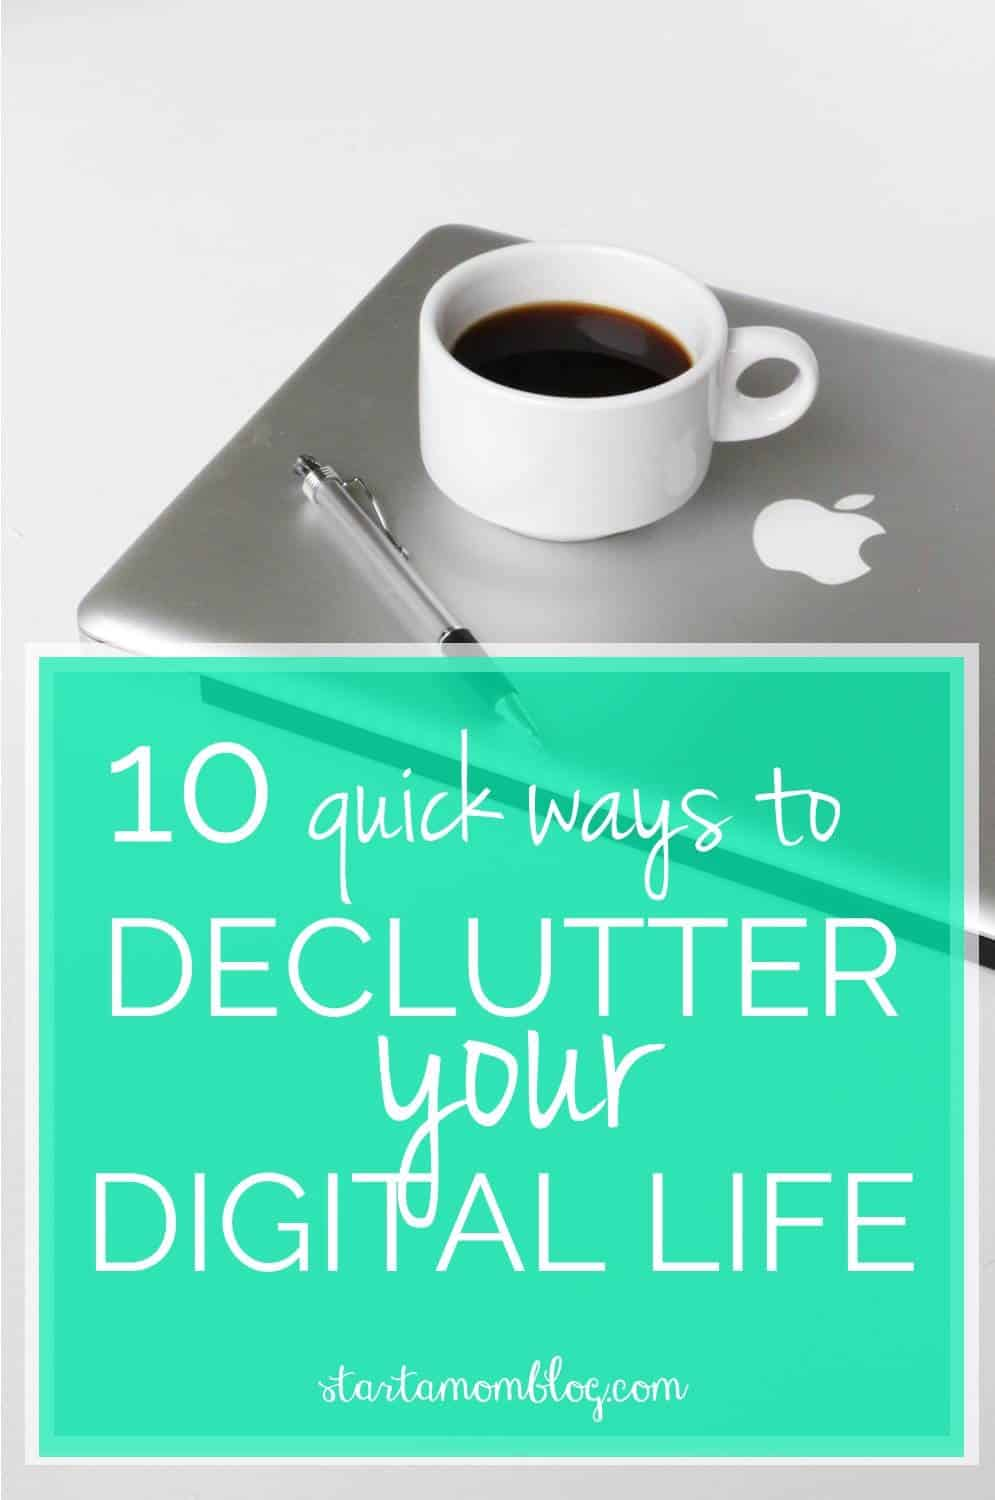 10 Practical Ways to Declutter your Digital Life v1